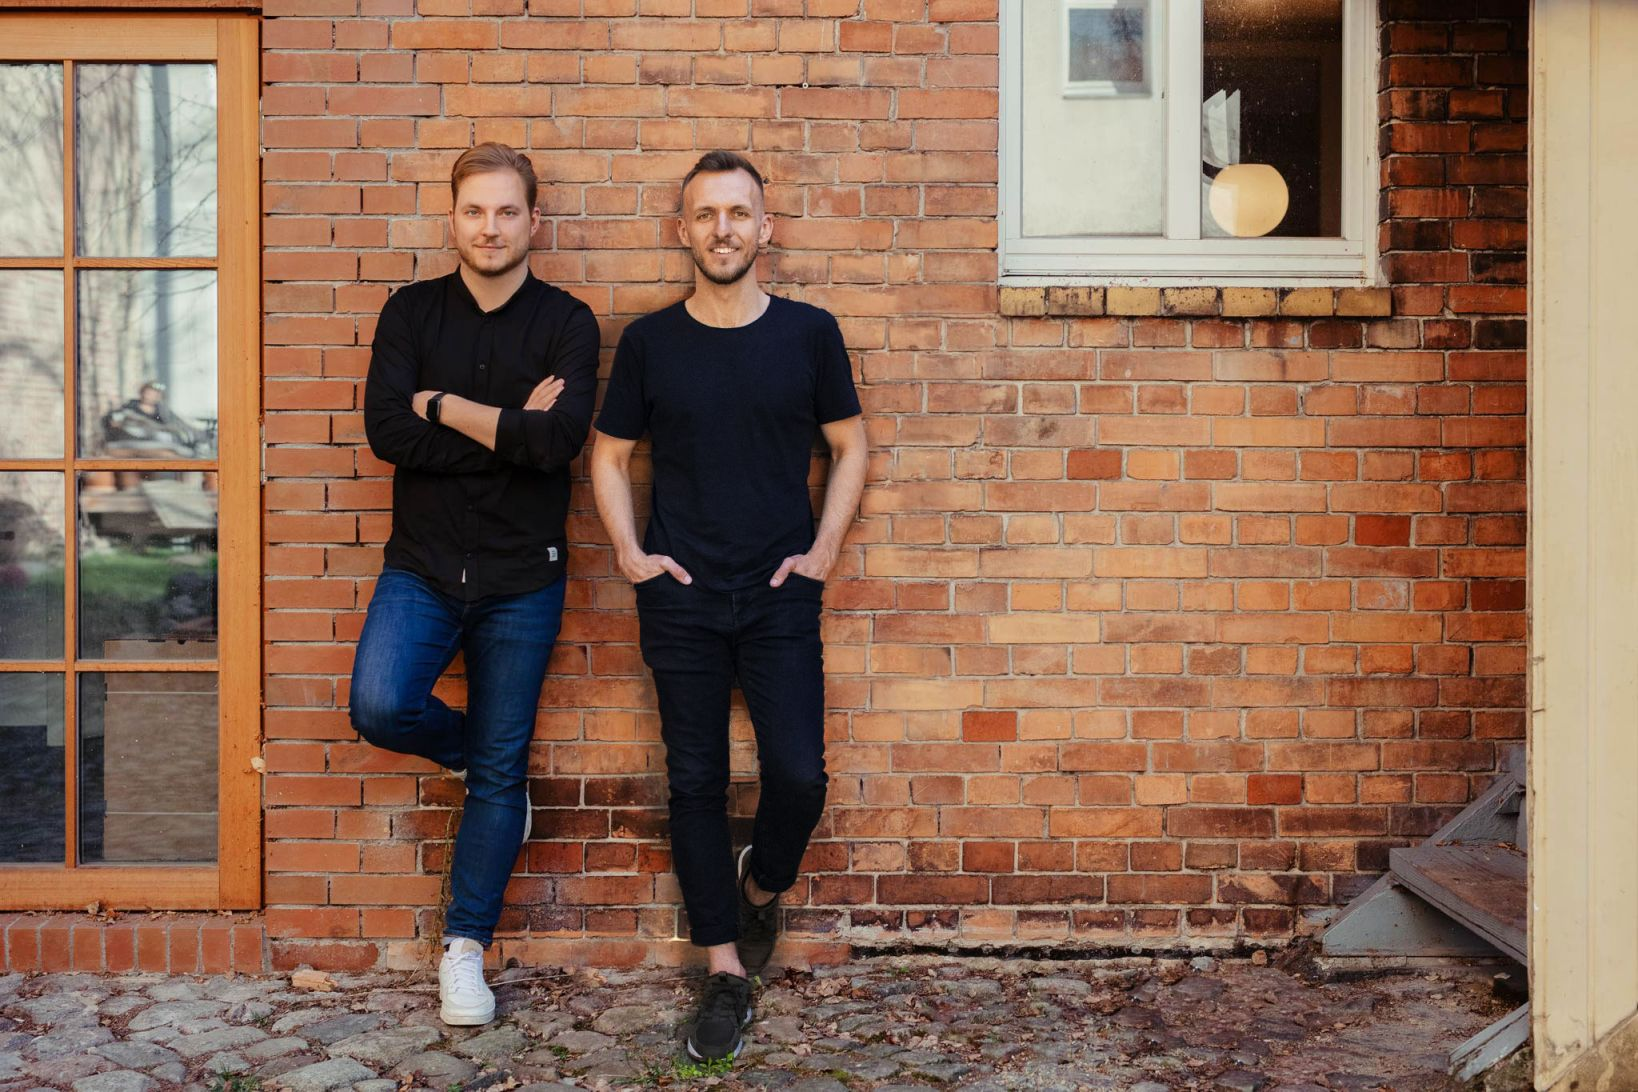 Berlin-based wajve secures €5 million seed funding to accelerate its financial advisory app for Gen Z